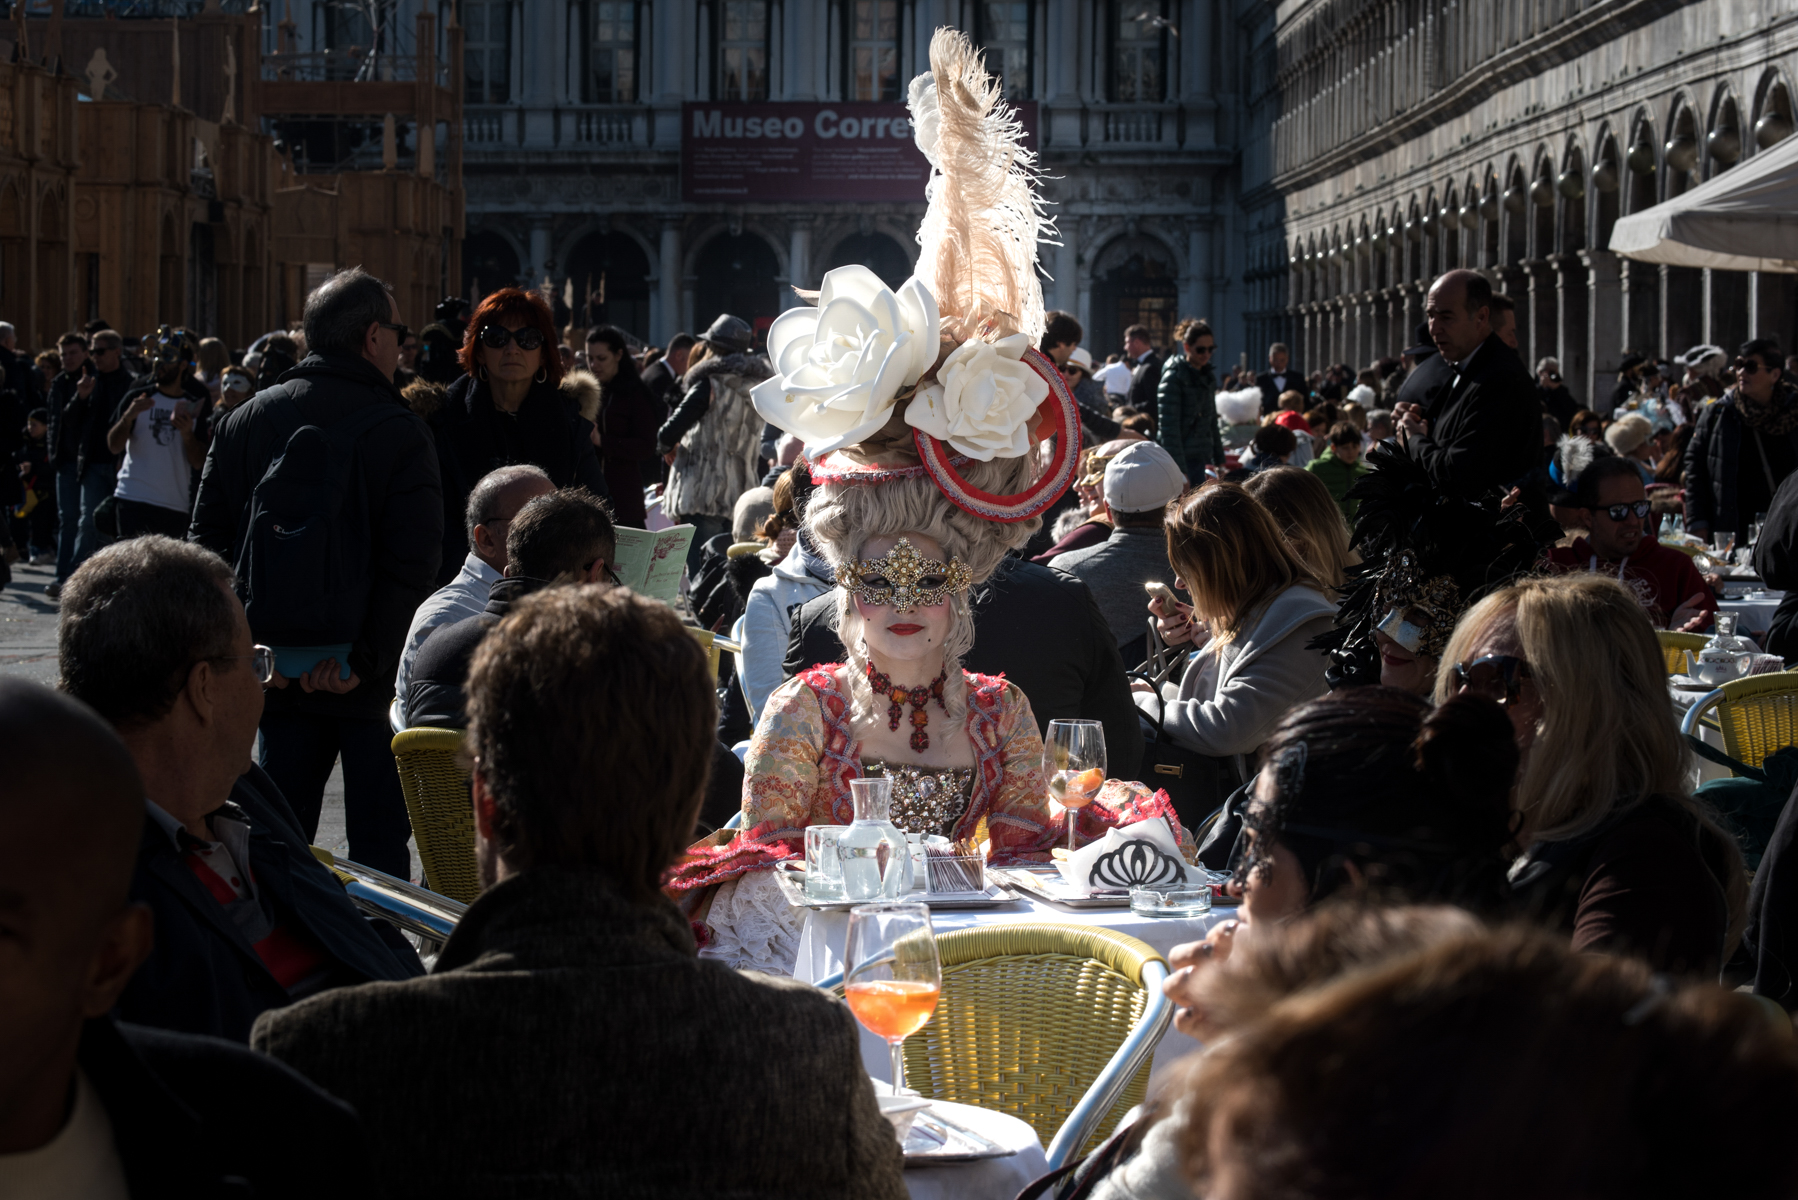 ONE DAY – WORKSHOP AL CARNEVALE DI VENEZIA